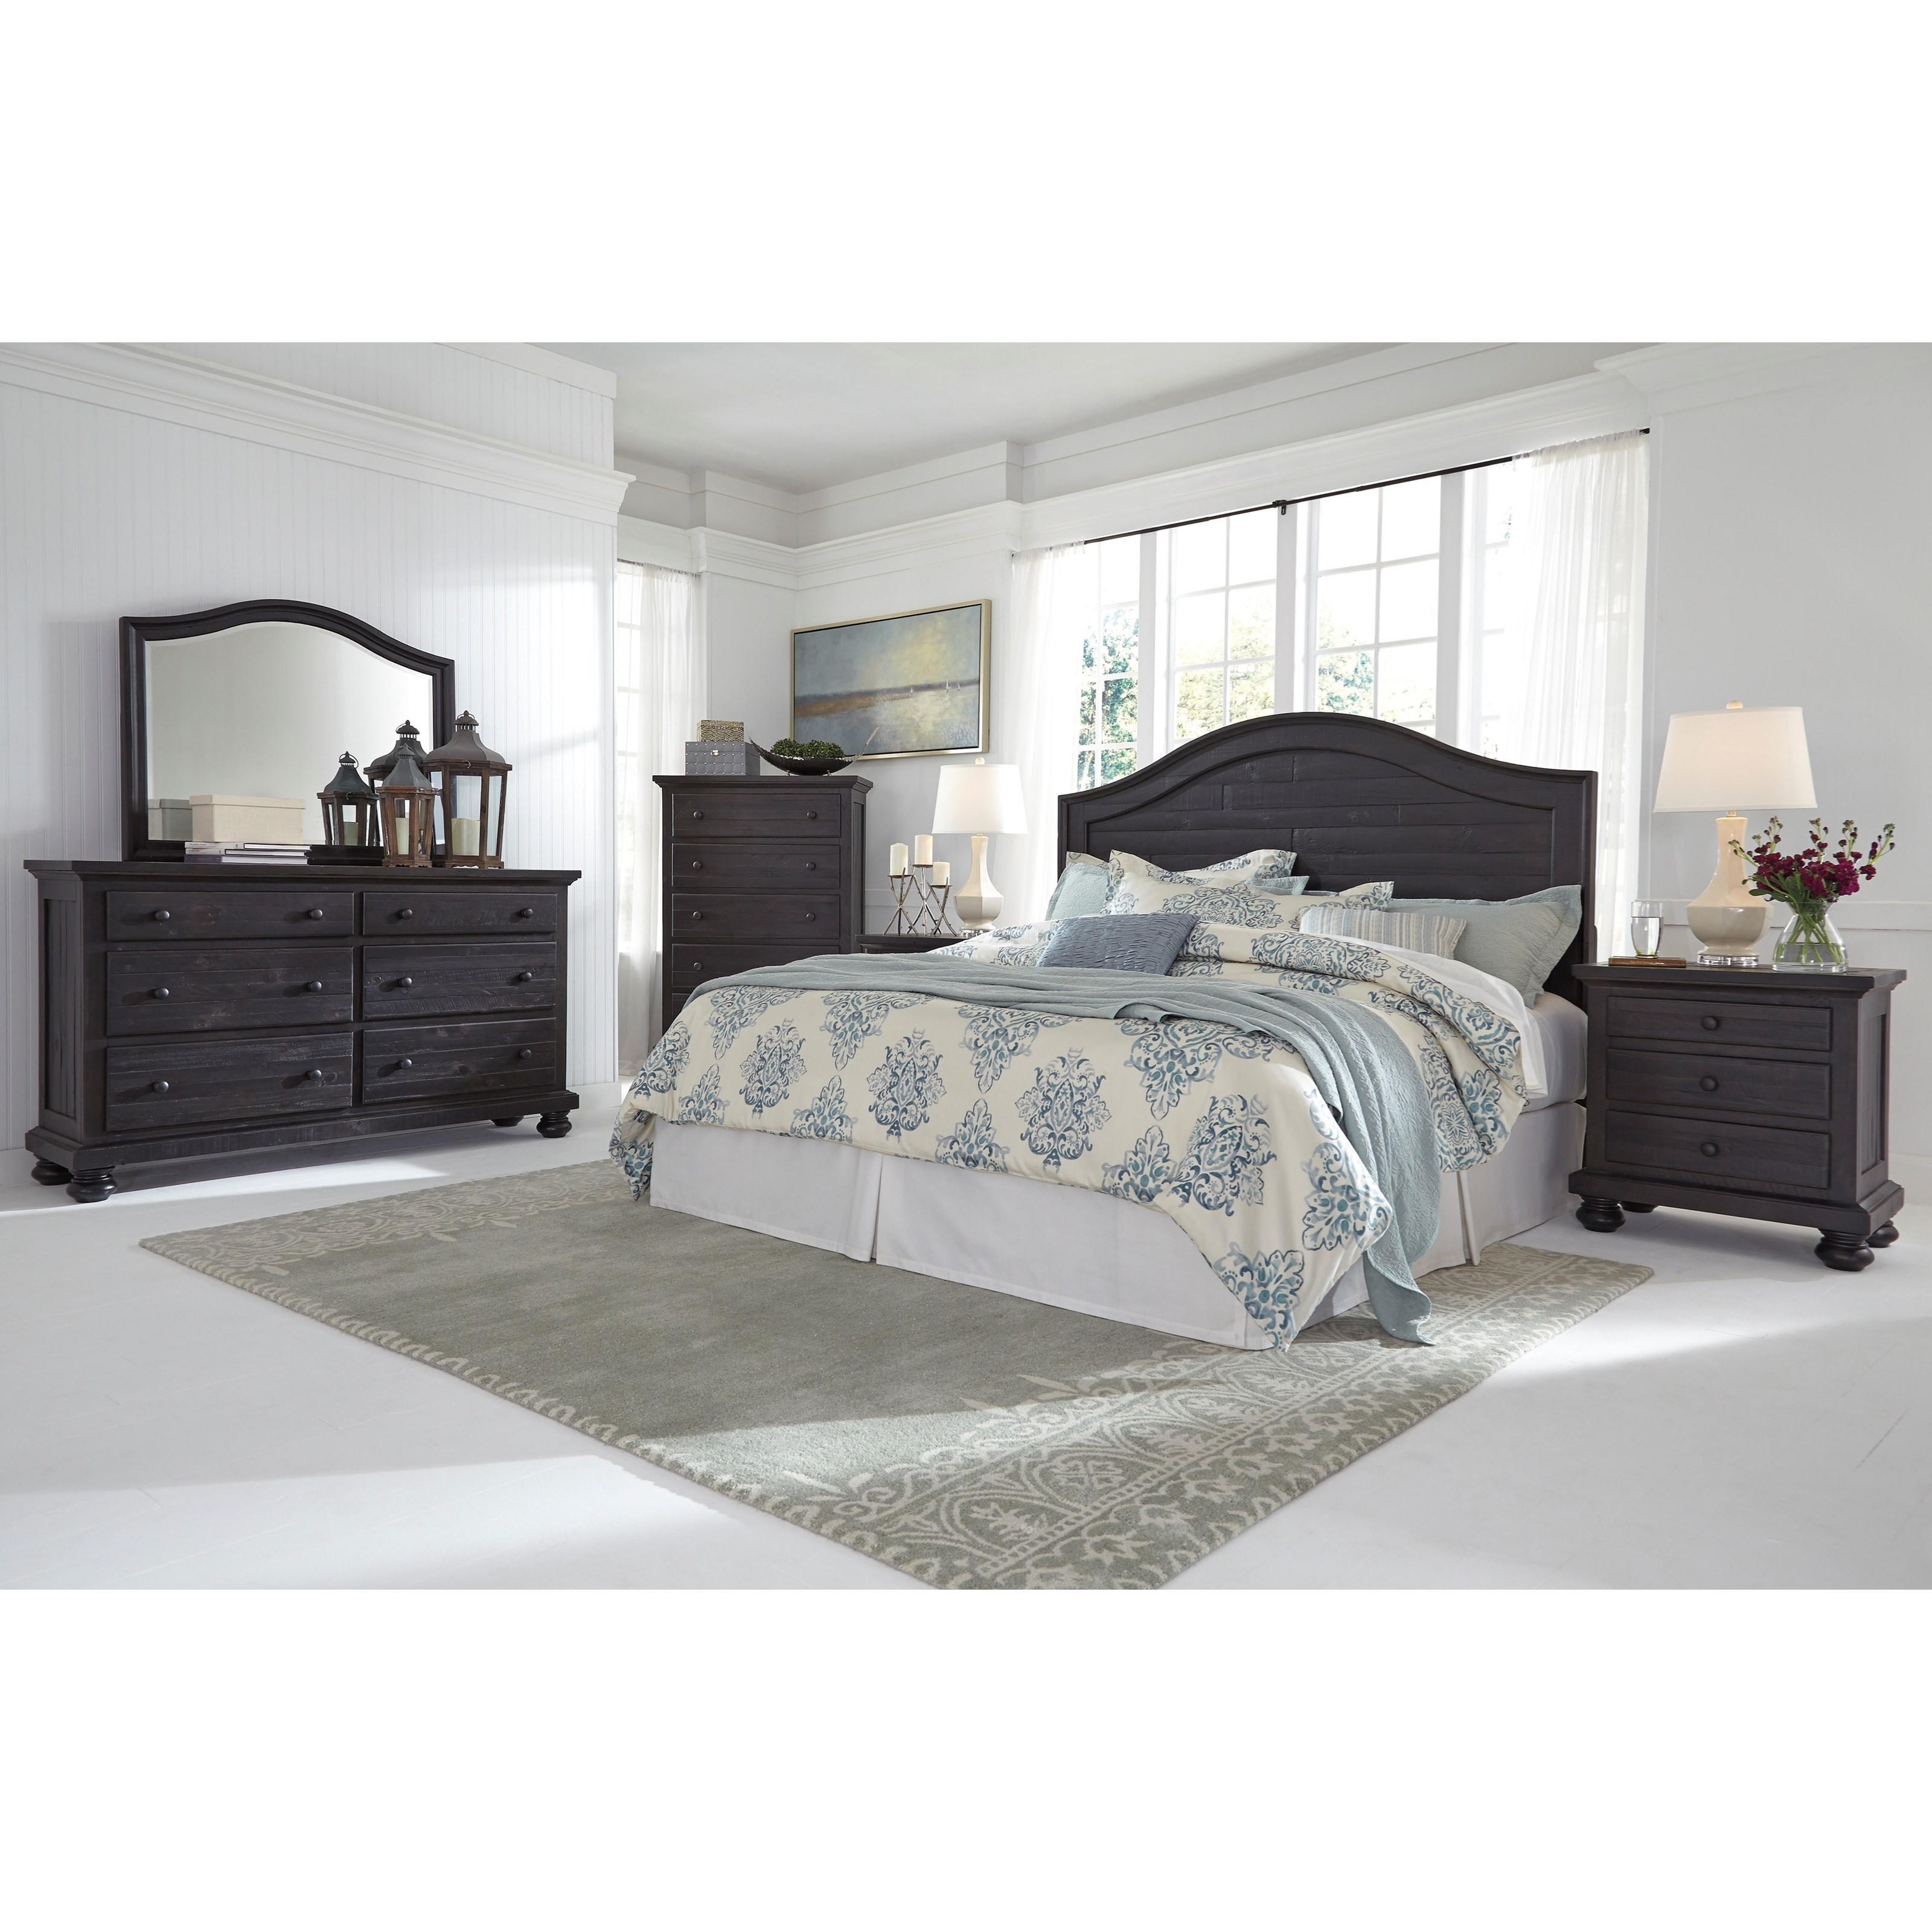 Signature Design by Ashley Sharlowe King California King Bedroom Group Hous